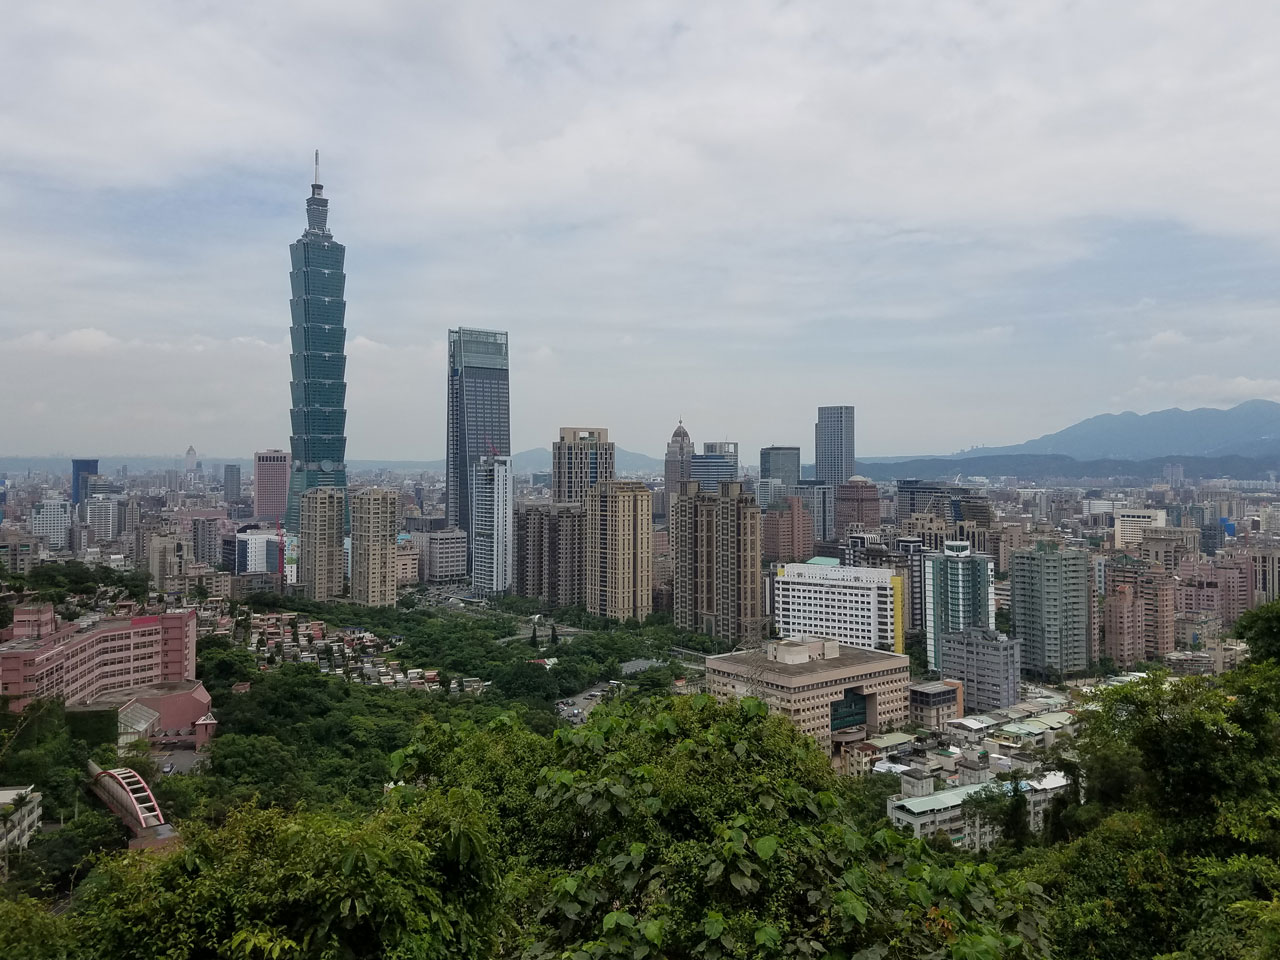 Taipei 101, as viewed from Xiangshan Trail